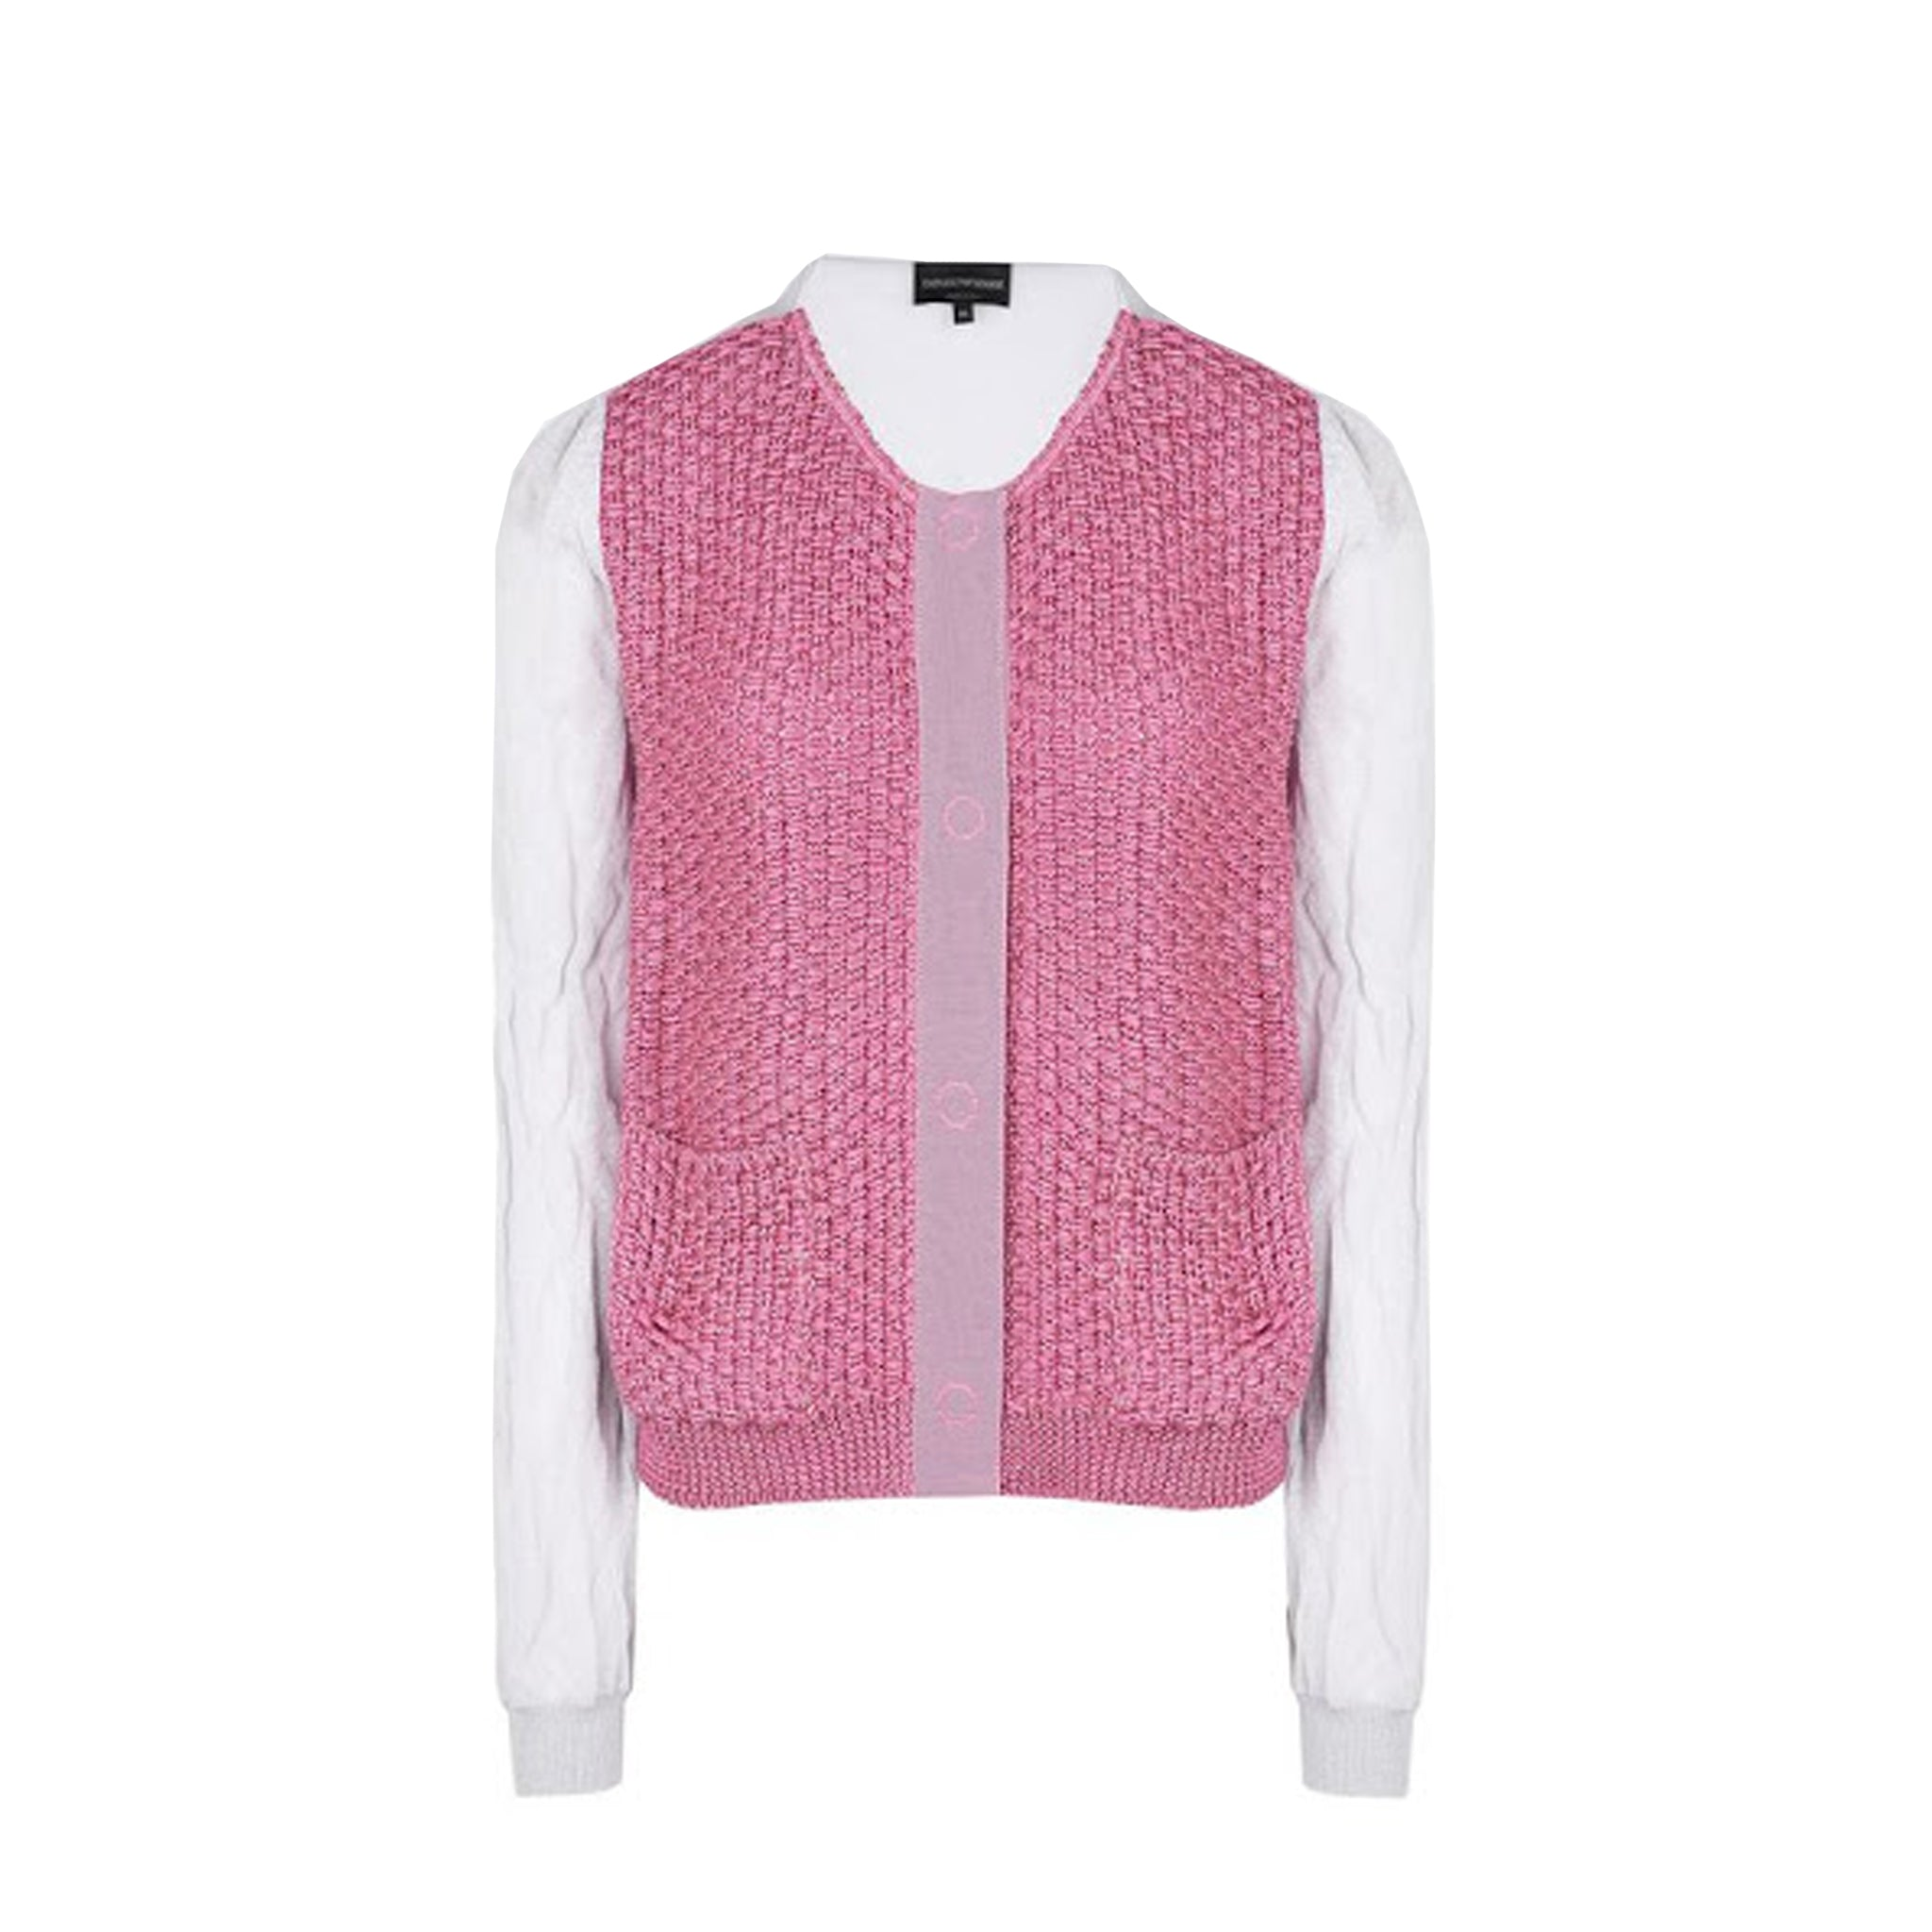 Emporio Armani Knitted Cardigan